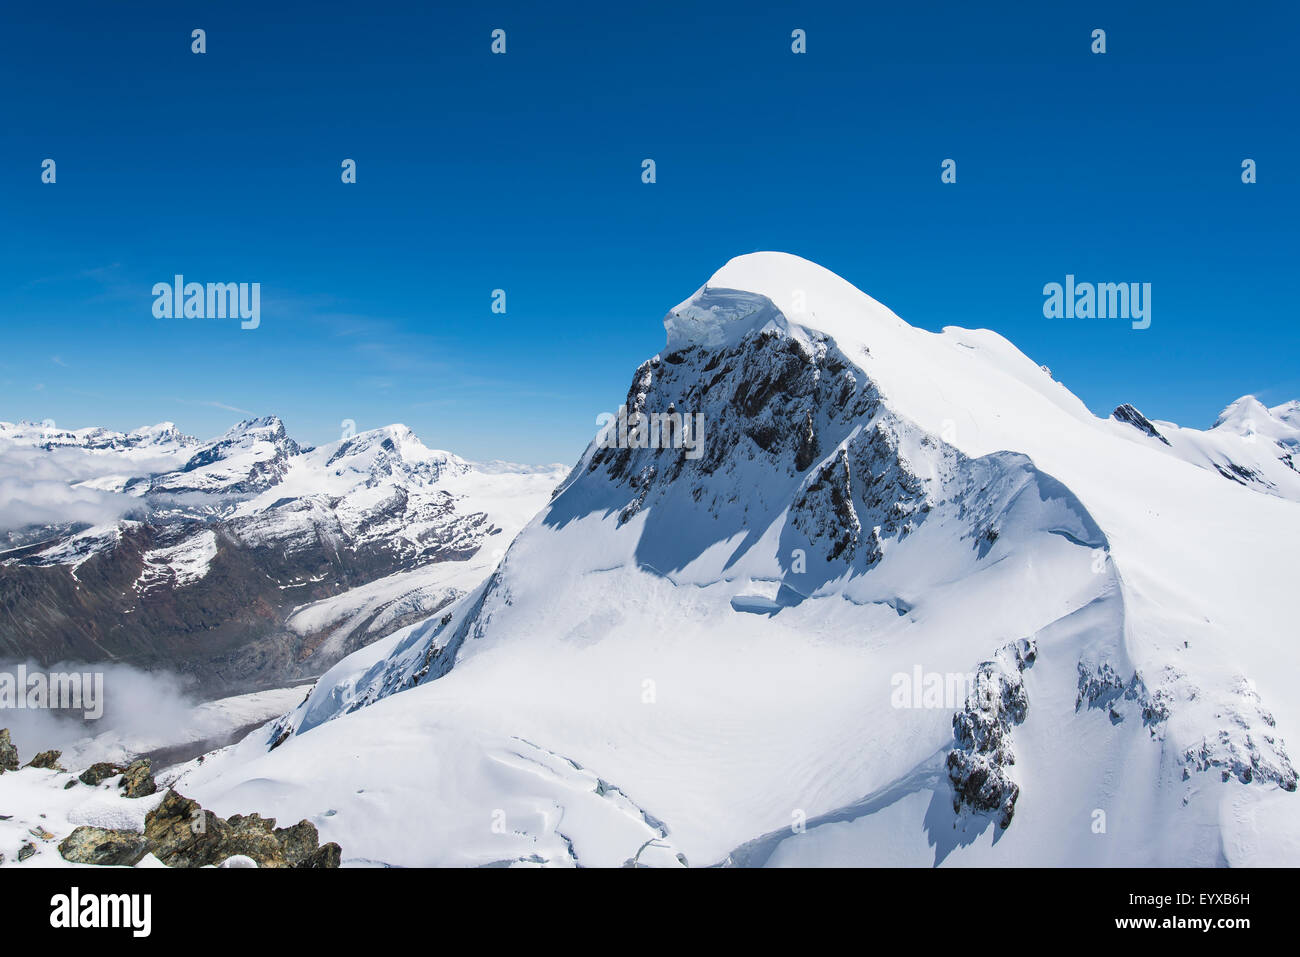 Breithorn summit from the viewing platform at the Matterhorn Glacier Paradise - Stock Image